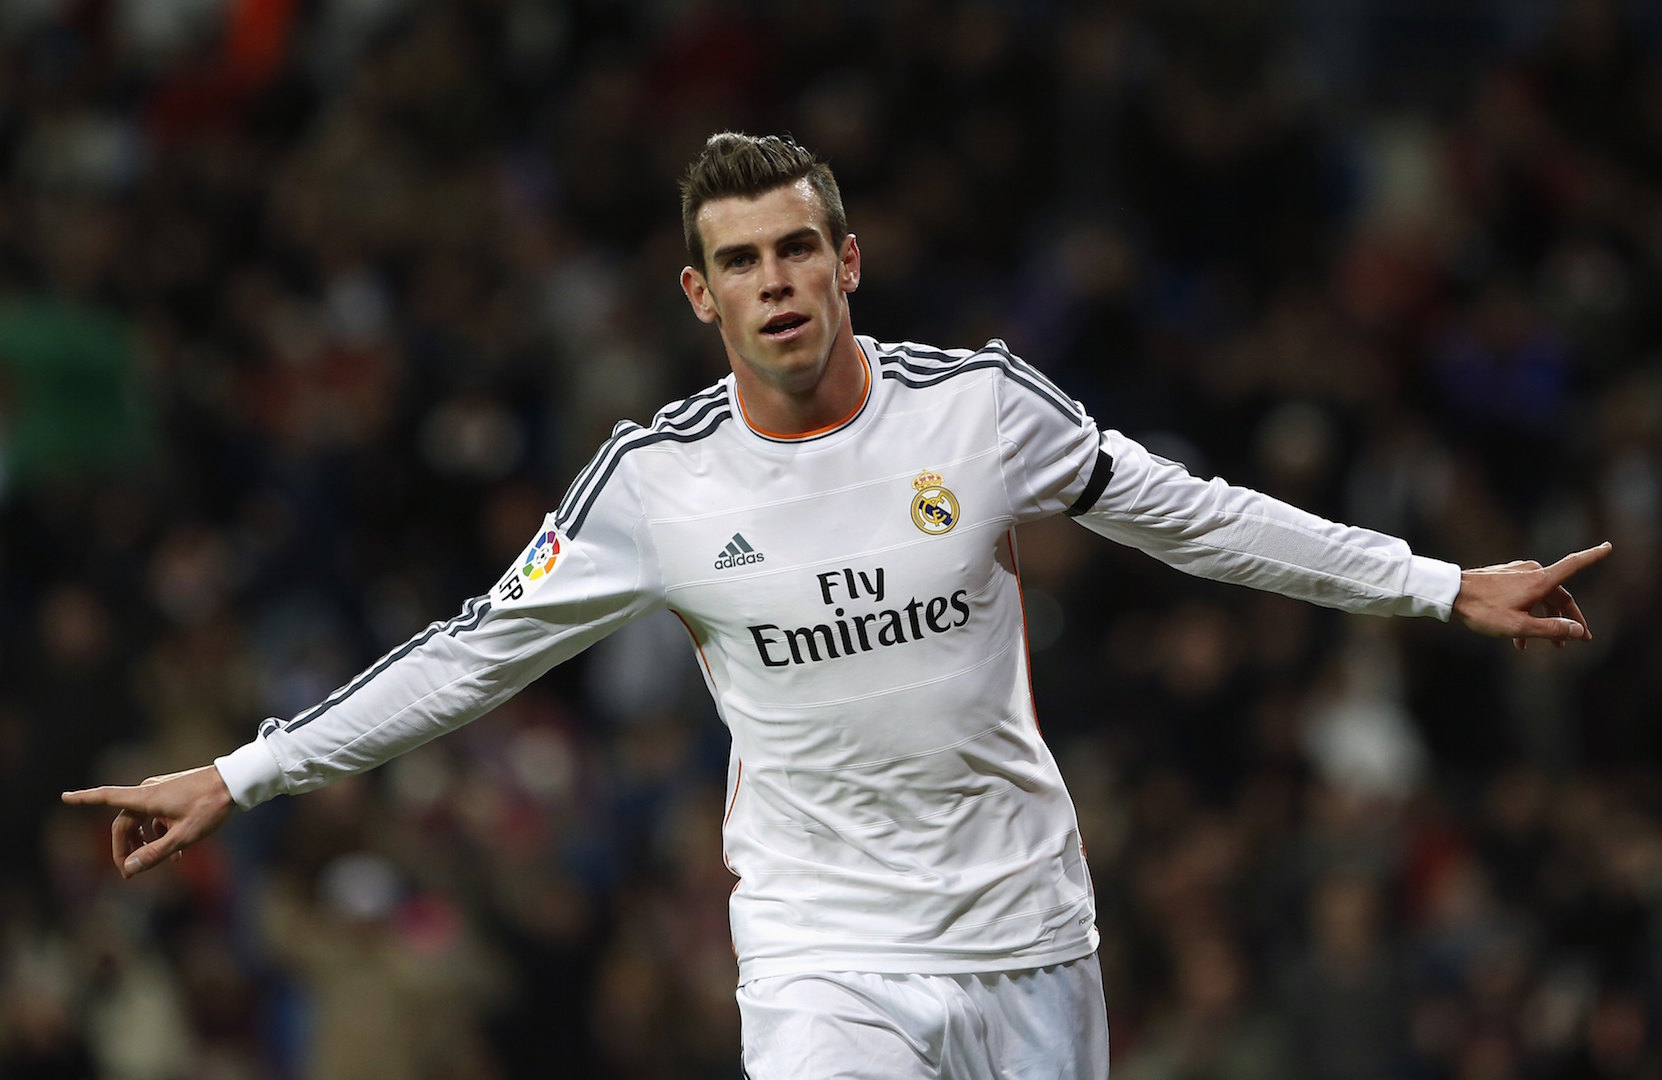 Holiday–maker paired with Gareth Bale